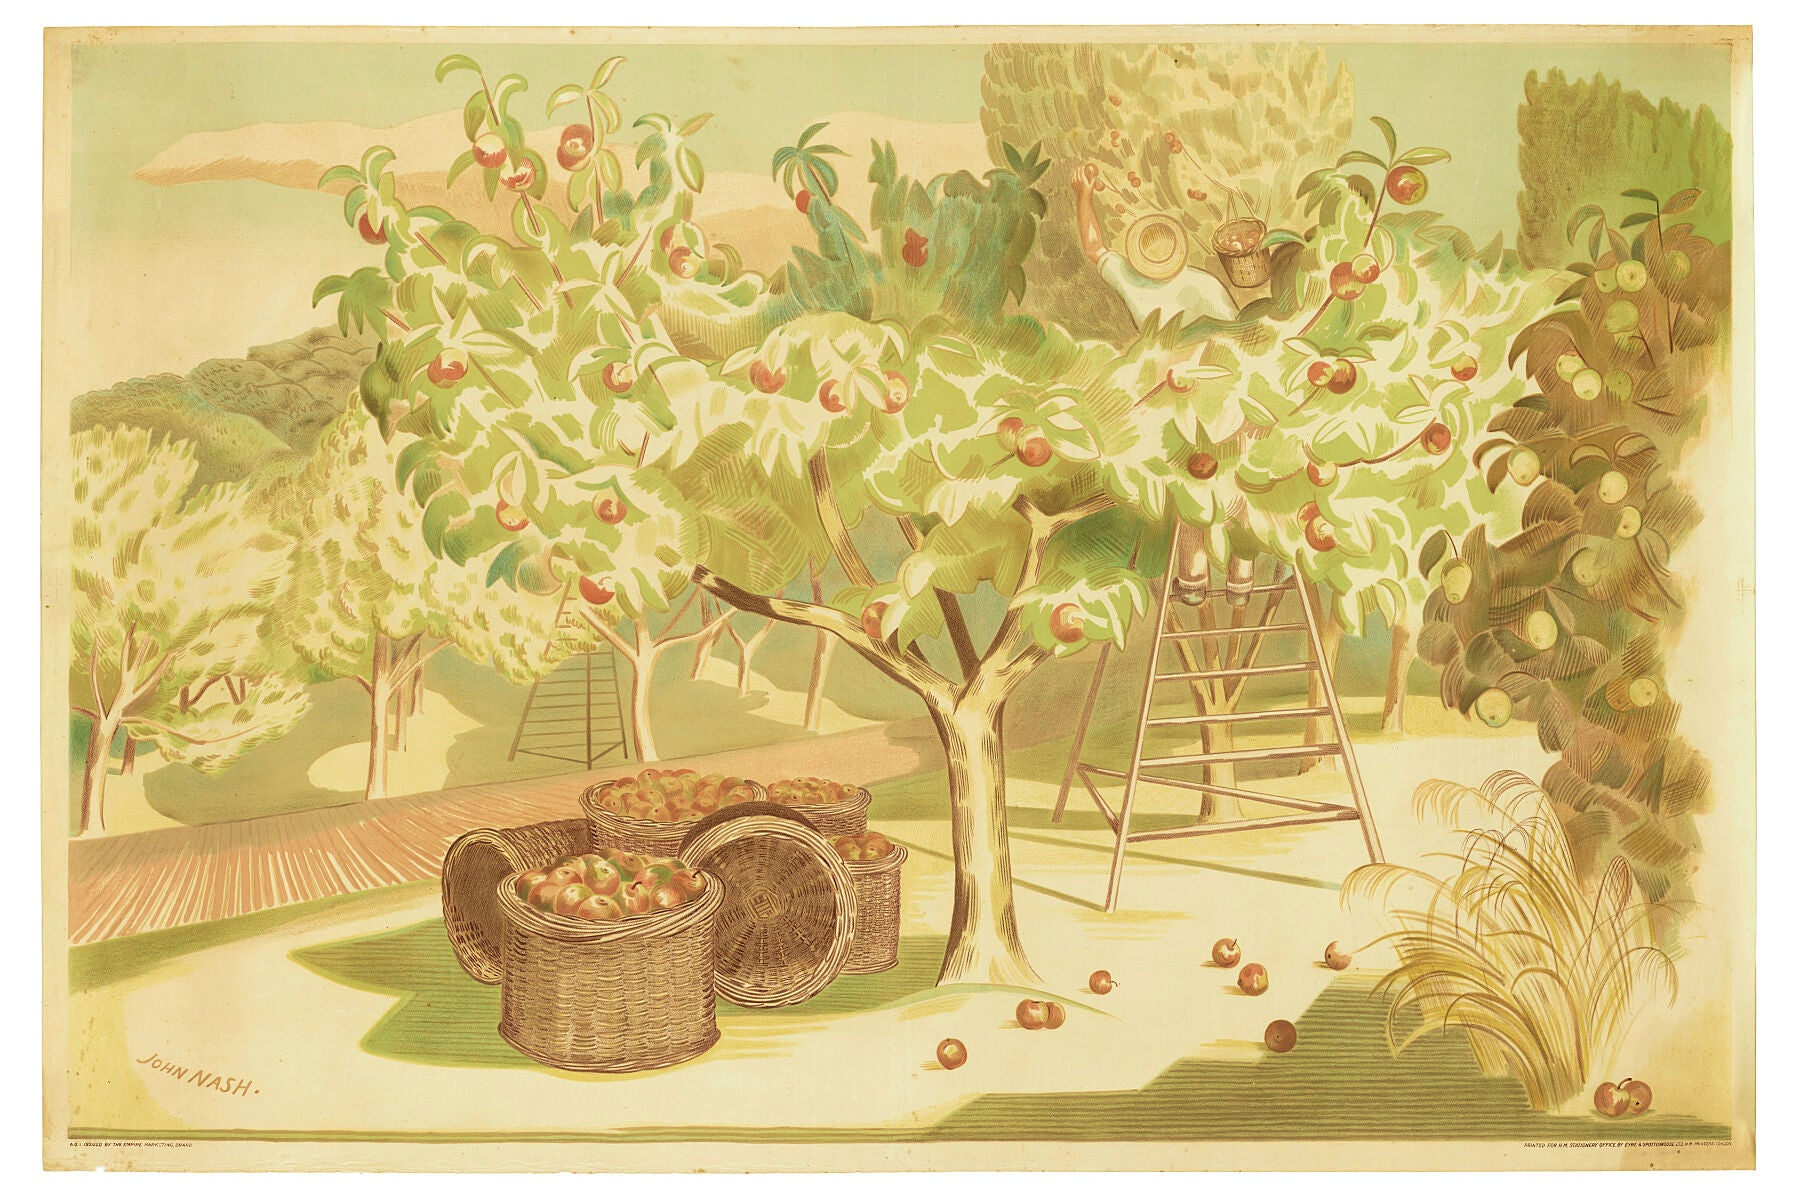 Poster, 'Fruit Gardens and Orchard', 1930, United Kingdom, by John Nash, Eyre & Spottiswoode Ltd., H.M. Stationery Office, Empire Marketing Board